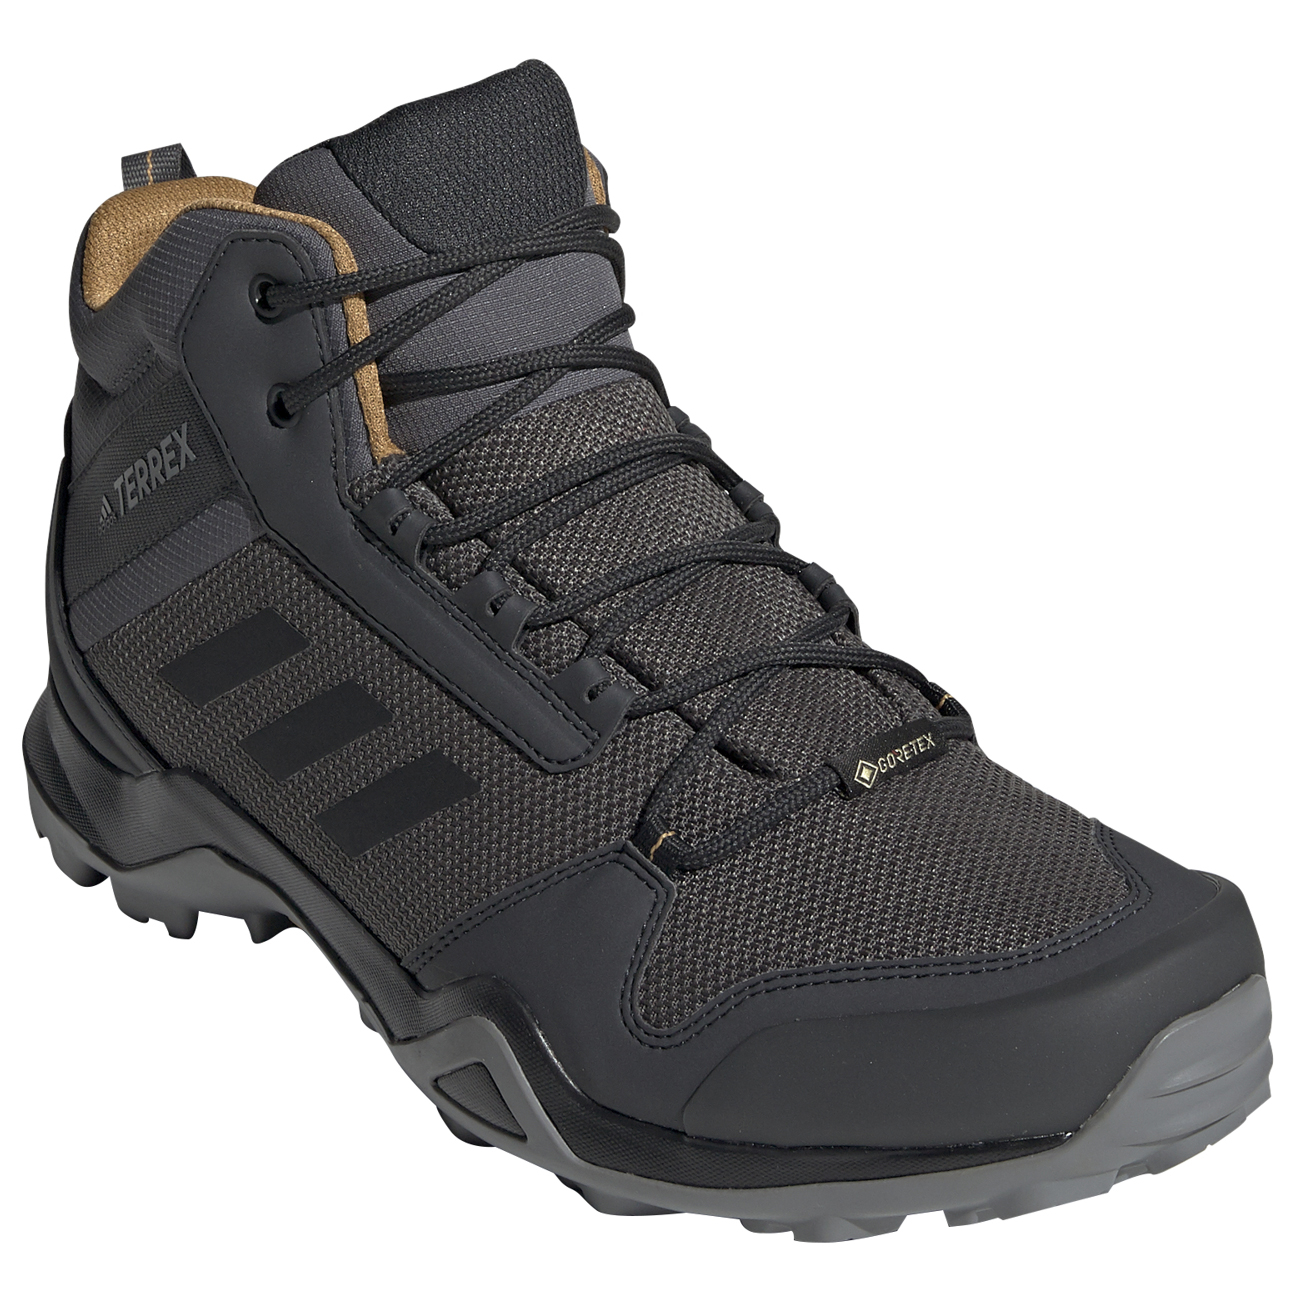 adidas - Terrex AX3 Mid GTX - Walking boots - Core Black / Core Black /  Carbon | 7 (UK)